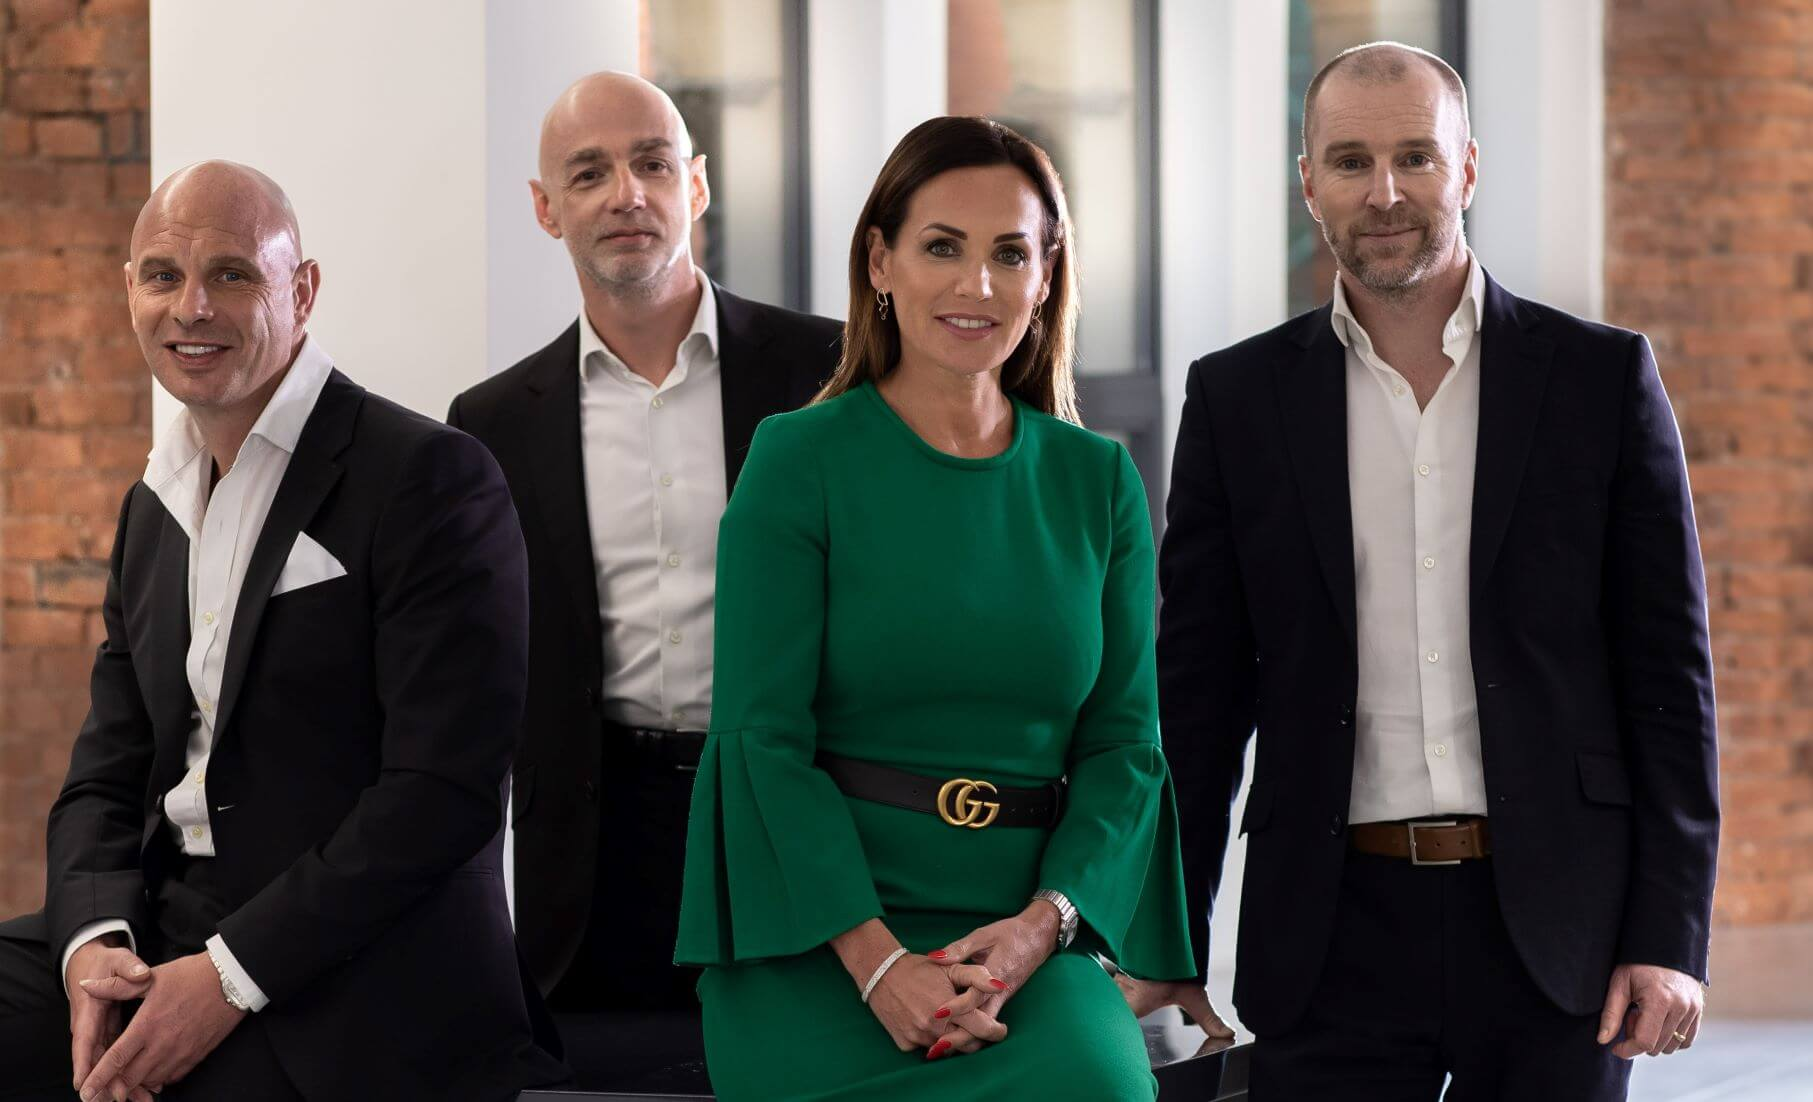 Beyond Group targets strategic growth as turnover hits £7.5 million